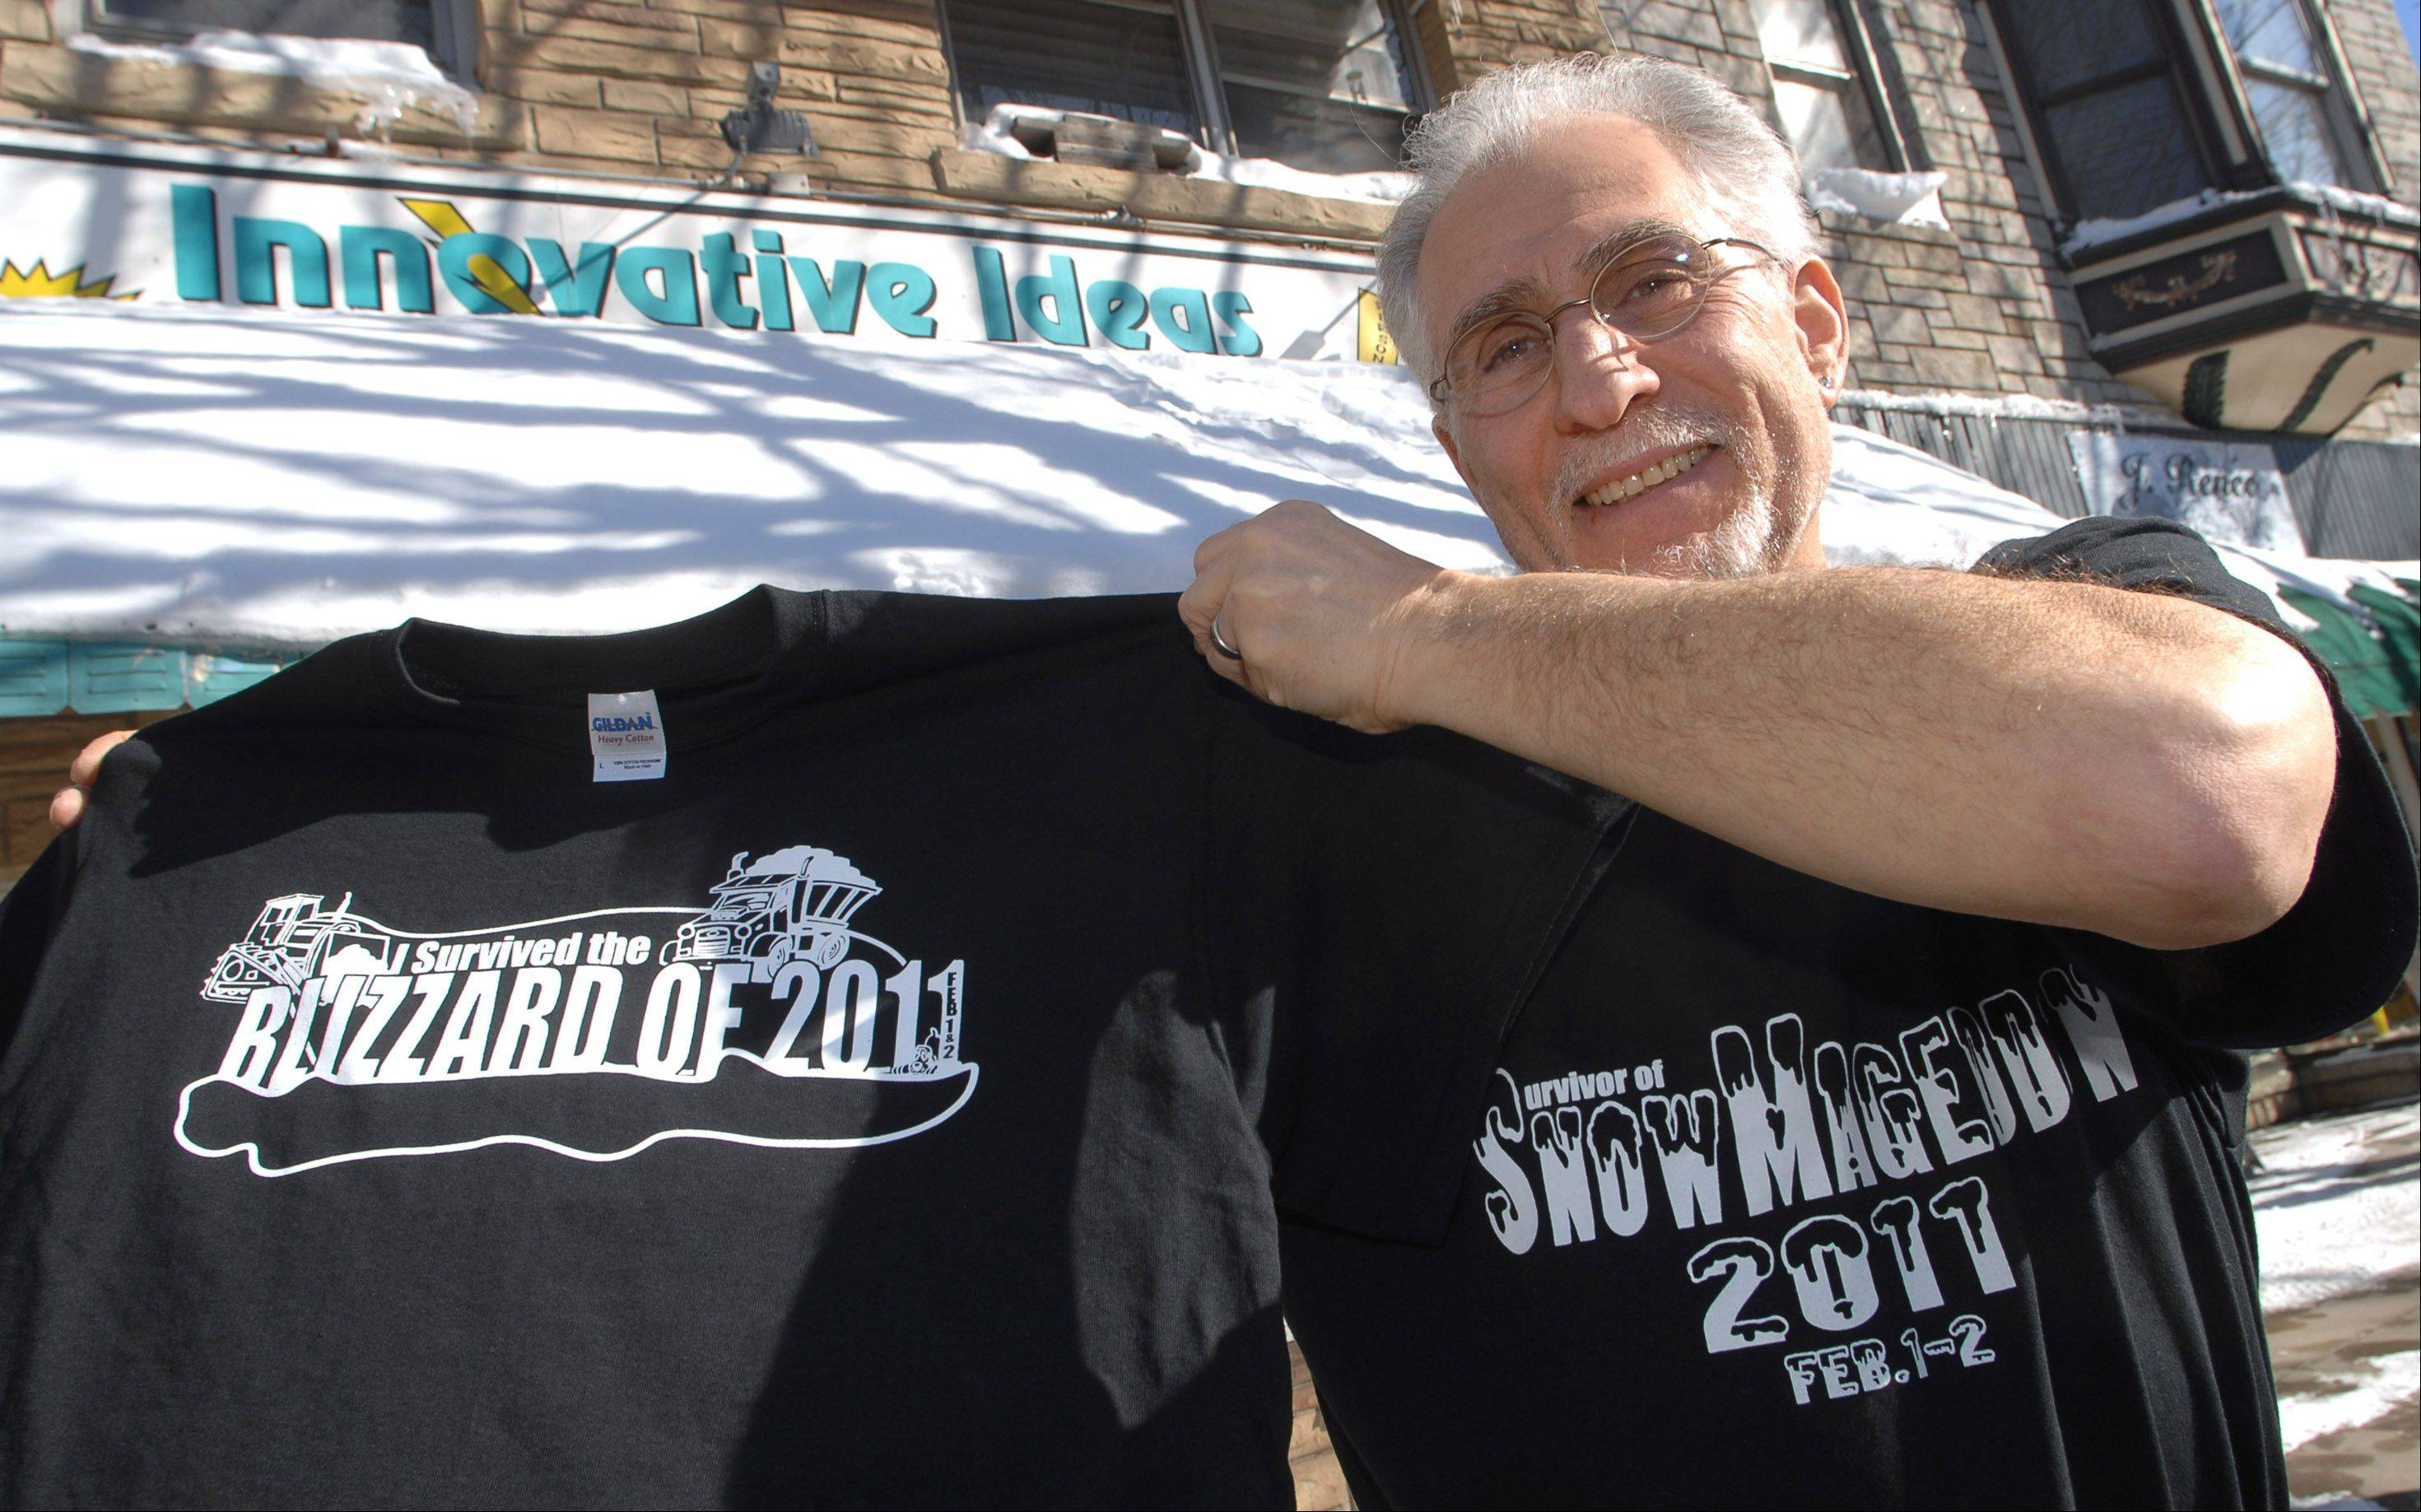 Antioch business owner Marc Mallen capitalized on the blizzard of 2011 by printing and selling about 200 T-shirts.